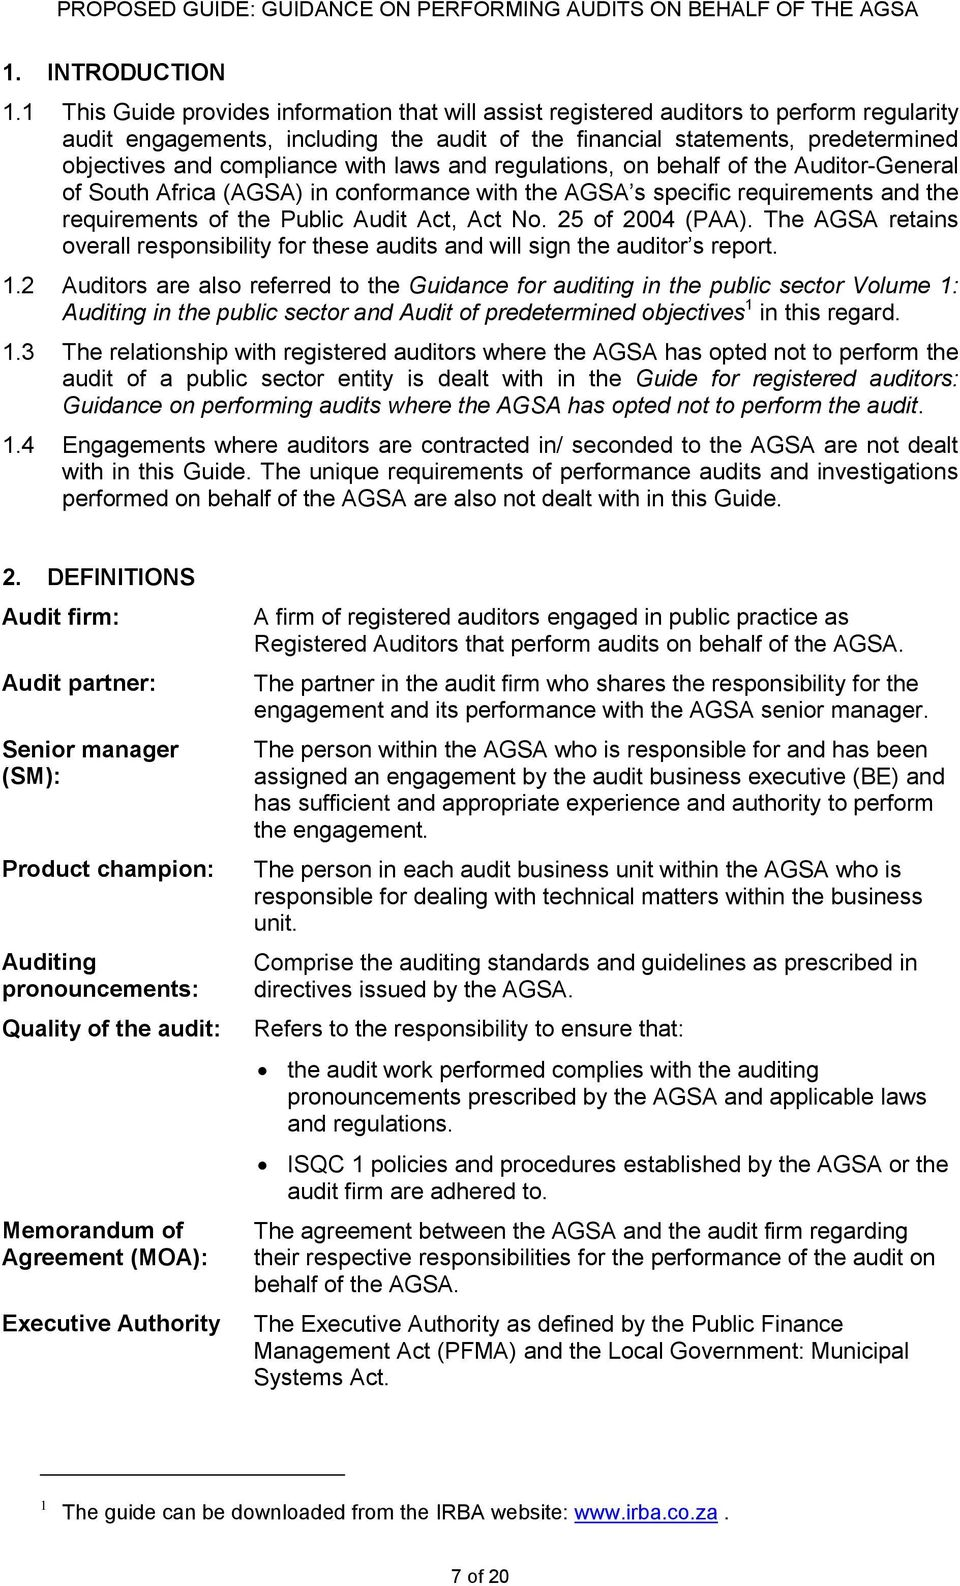 compliance with laws and regulations, on behalf of the Auditor-General of South Africa (AGSA) in conformance with the AGSA s specific requirements and the requirements of the Public Audit Act, Act No.